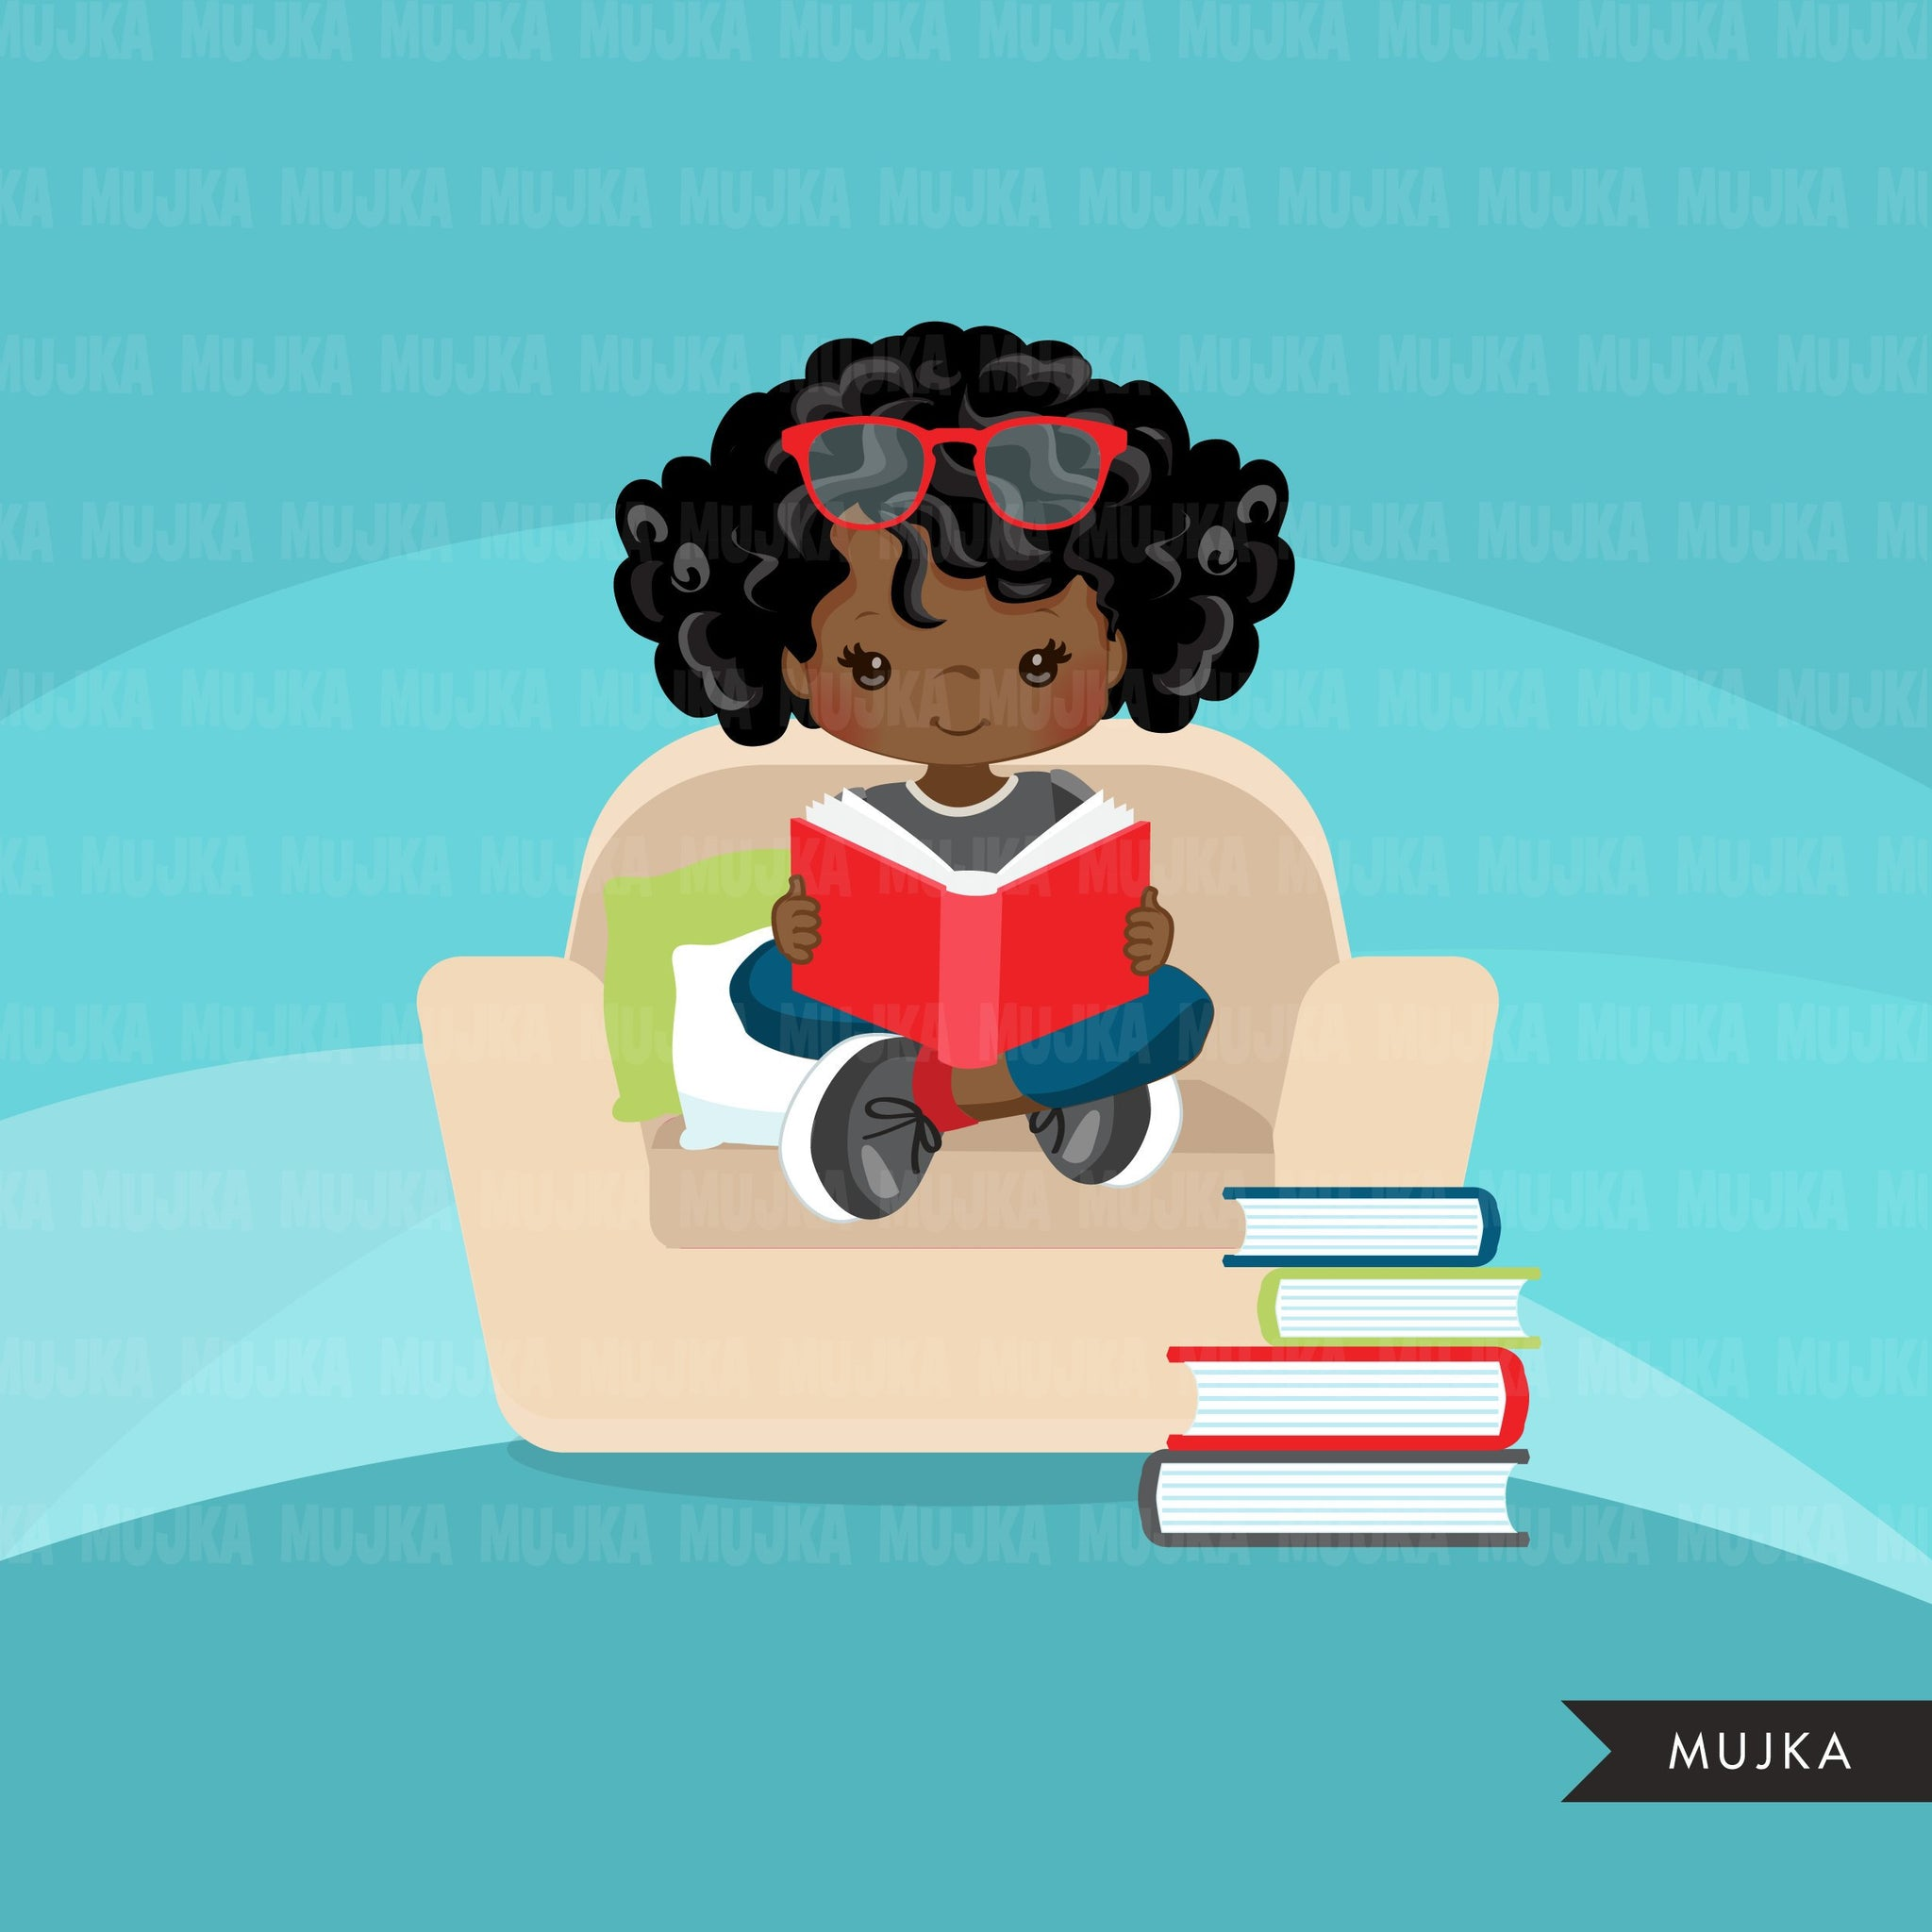 Reading clipart, school activity, homework, student black girl graphics